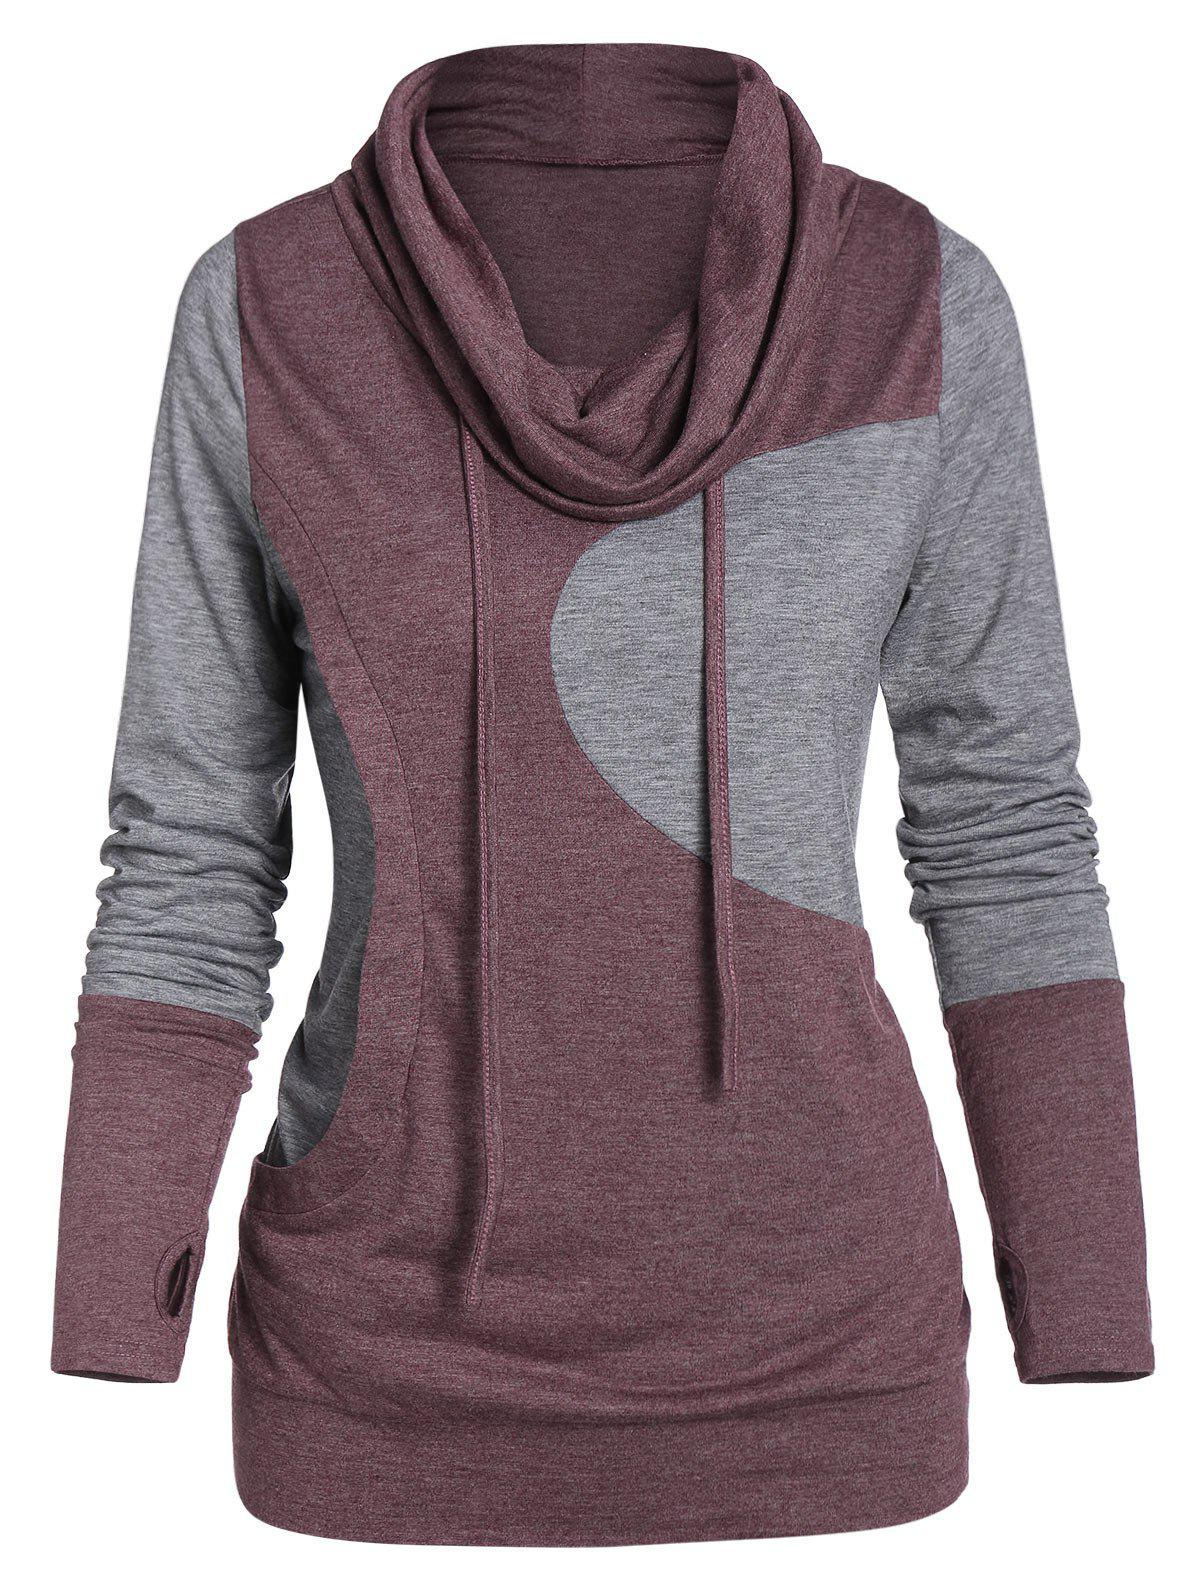 Glove Sleeve Contrast Heathered Drawstring Cowl Neck T-shirt фото